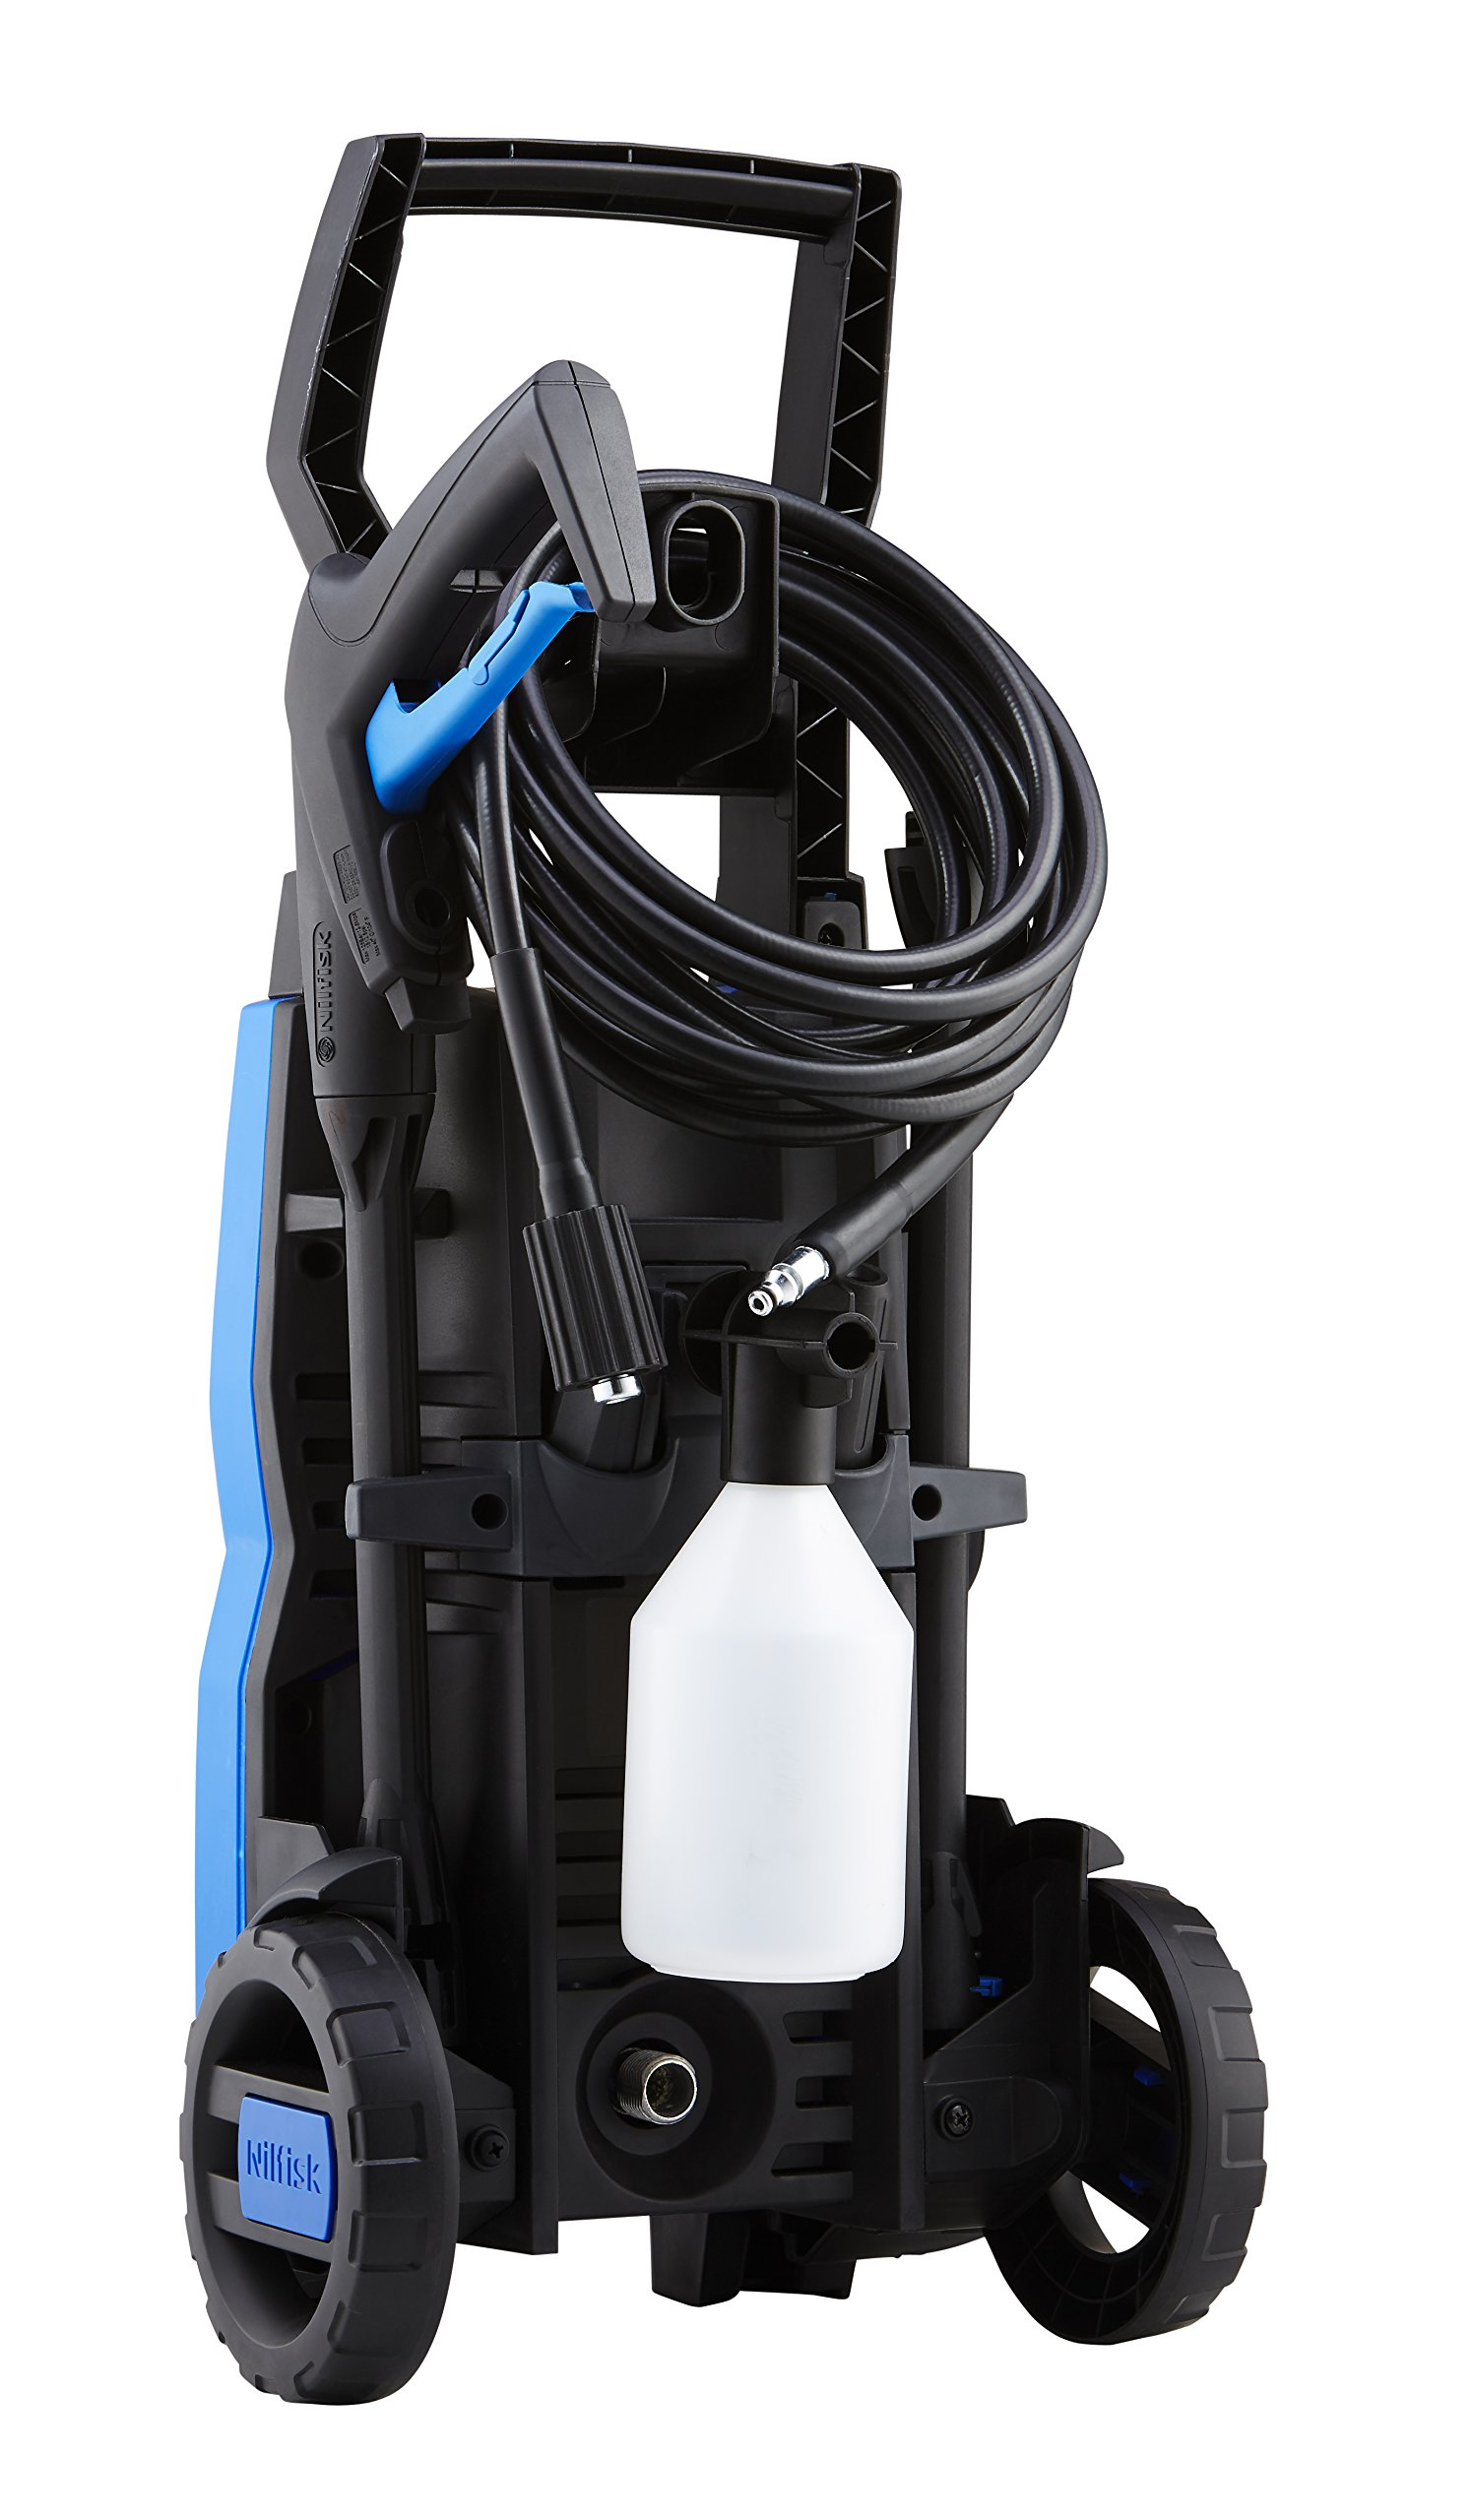 815LVMok0RL - Nilfisk C 110 bar 110.7-5 PC X-TRA Compact Pressure Washer for Basic Tasks – Outdoor Cleaner with Patio Cleaning Accessory Kit – 440 L/H Water Flow (Blue)